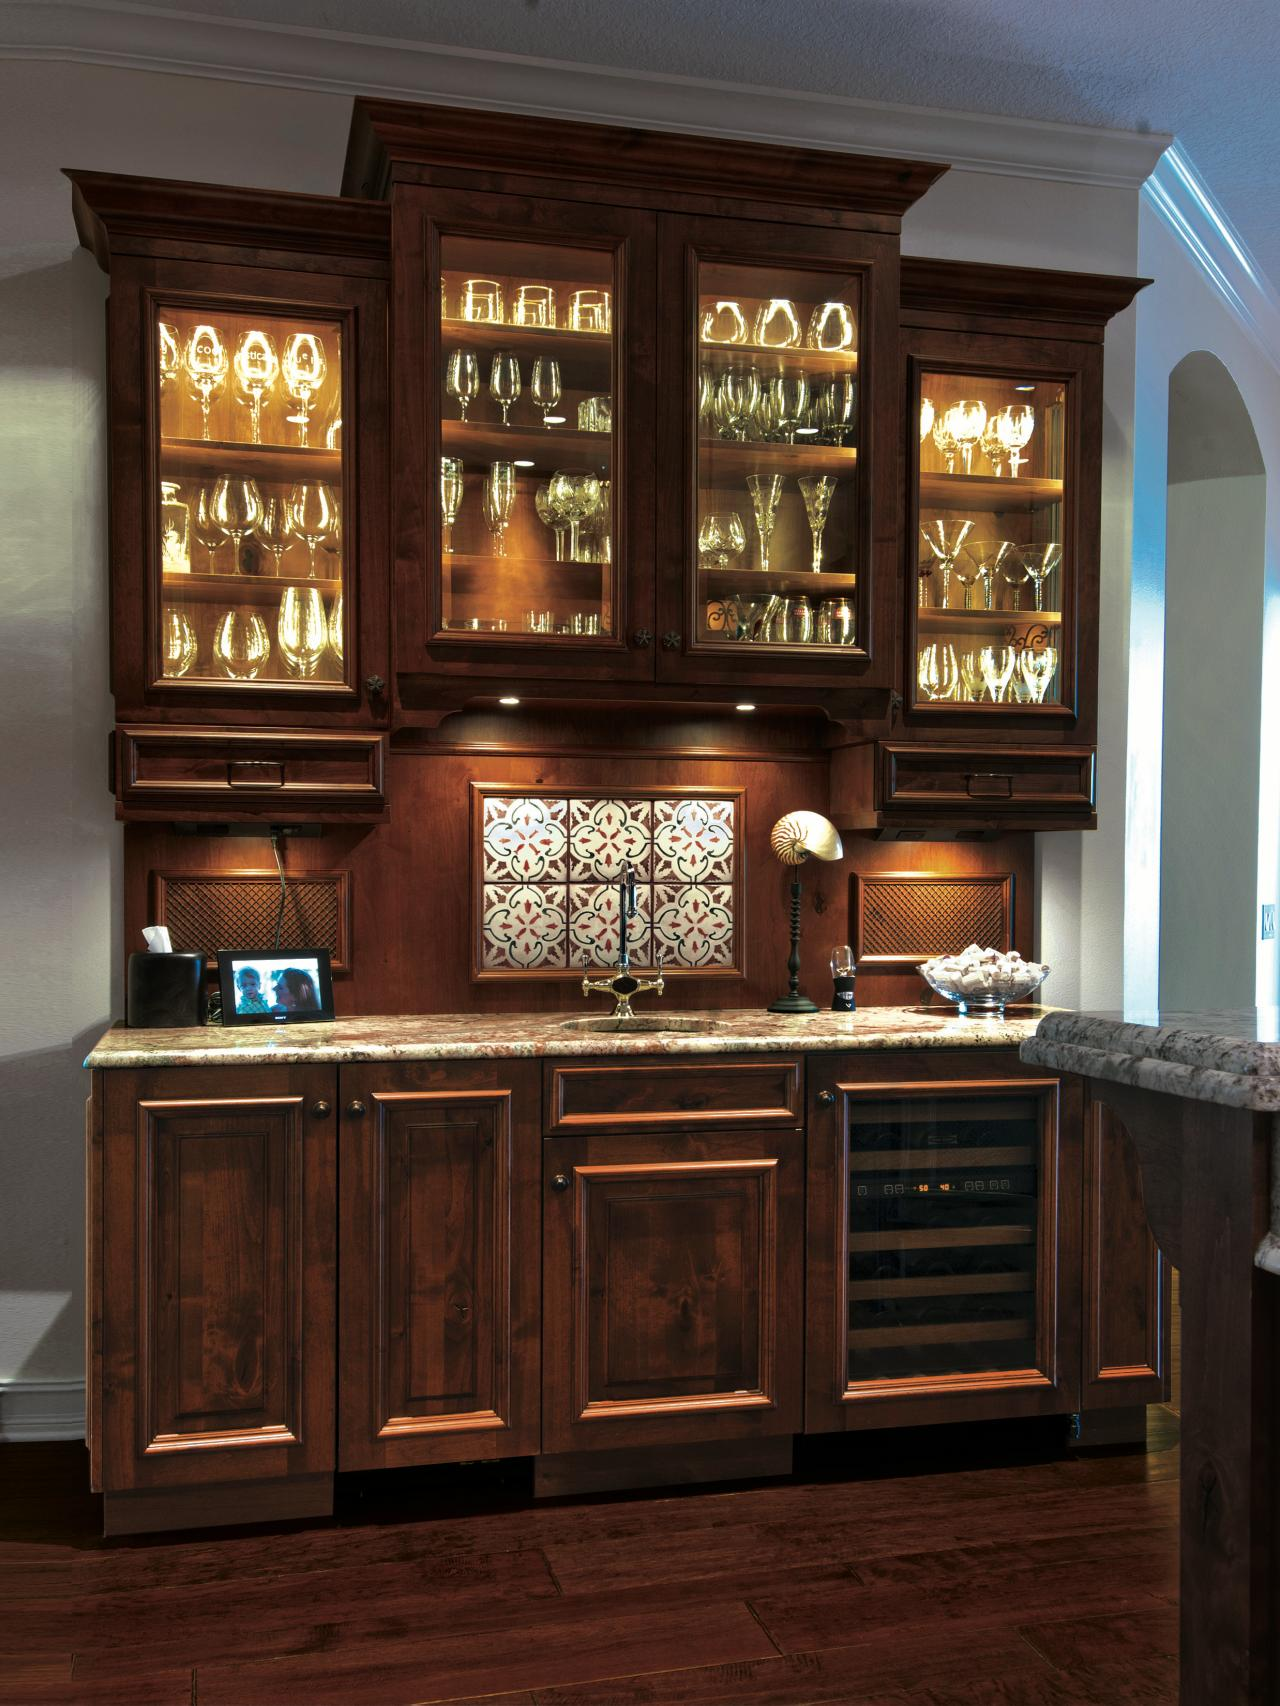 Barkast Wit The Entertainer 39s Guide To Designing The Perfect Wet Bar